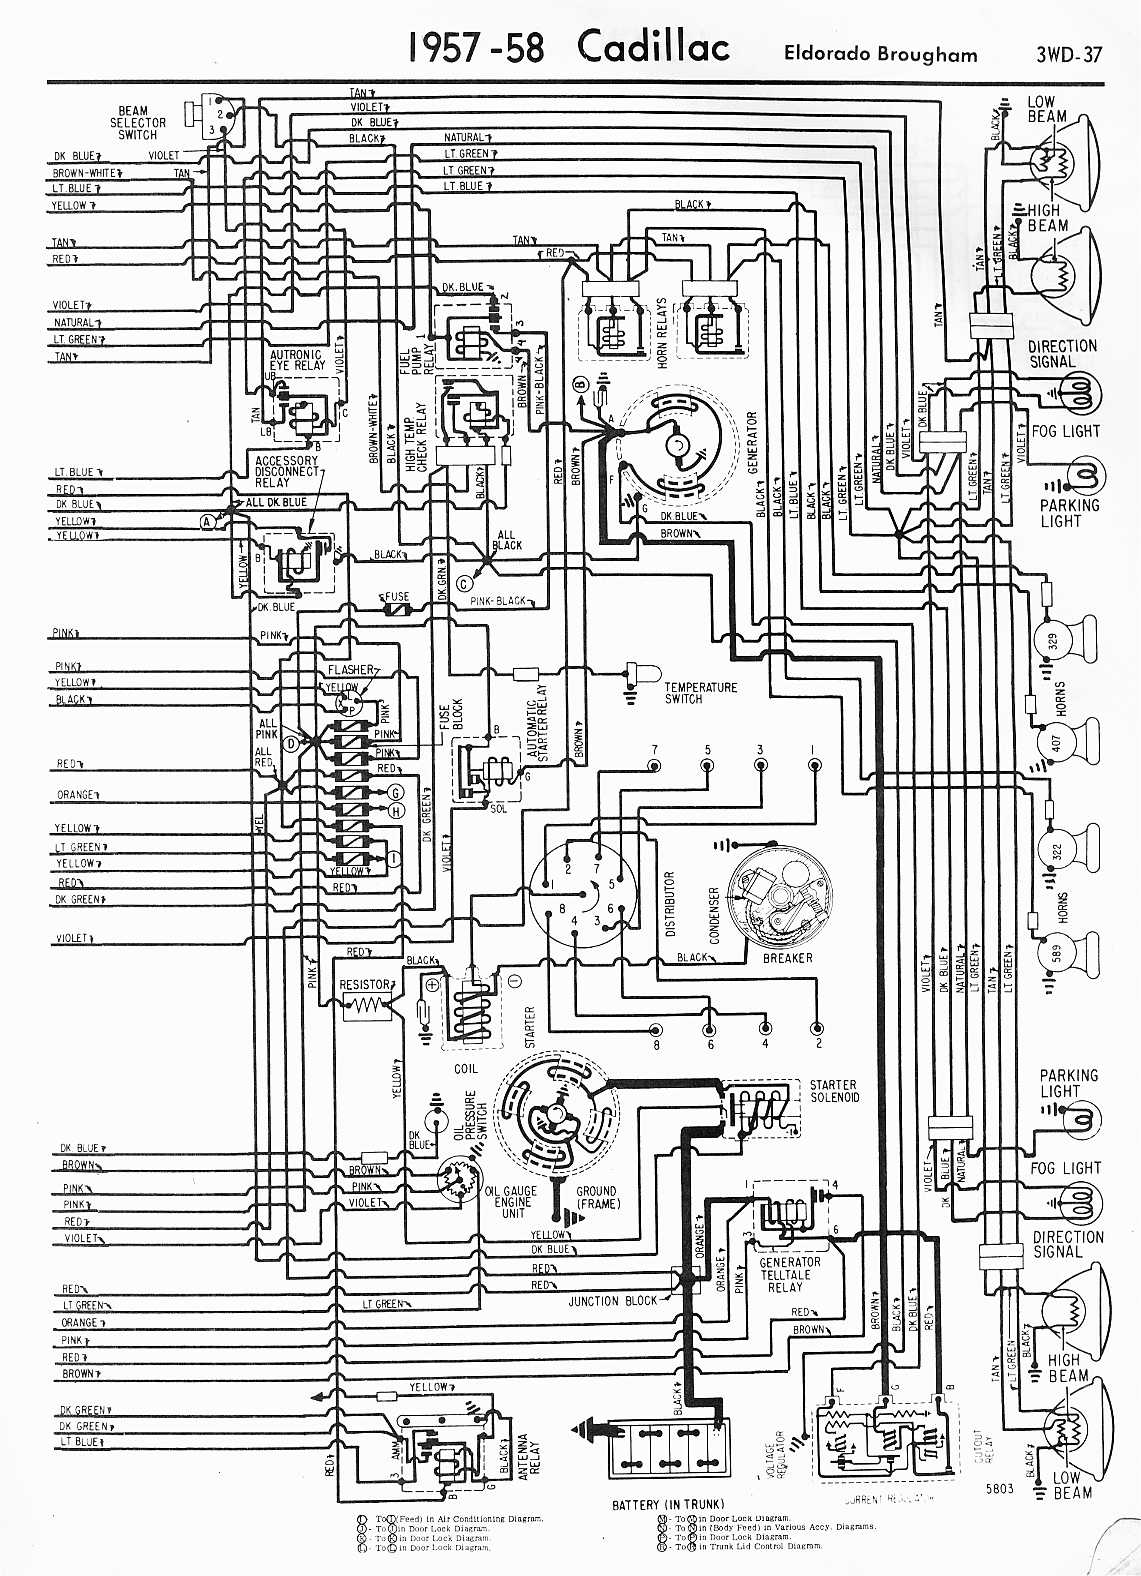 MWireCadi65_3WD 037 cadillac wiring diagrams 1957 1965 2002 cadillac deville fuse box diagram at edmiracle.co